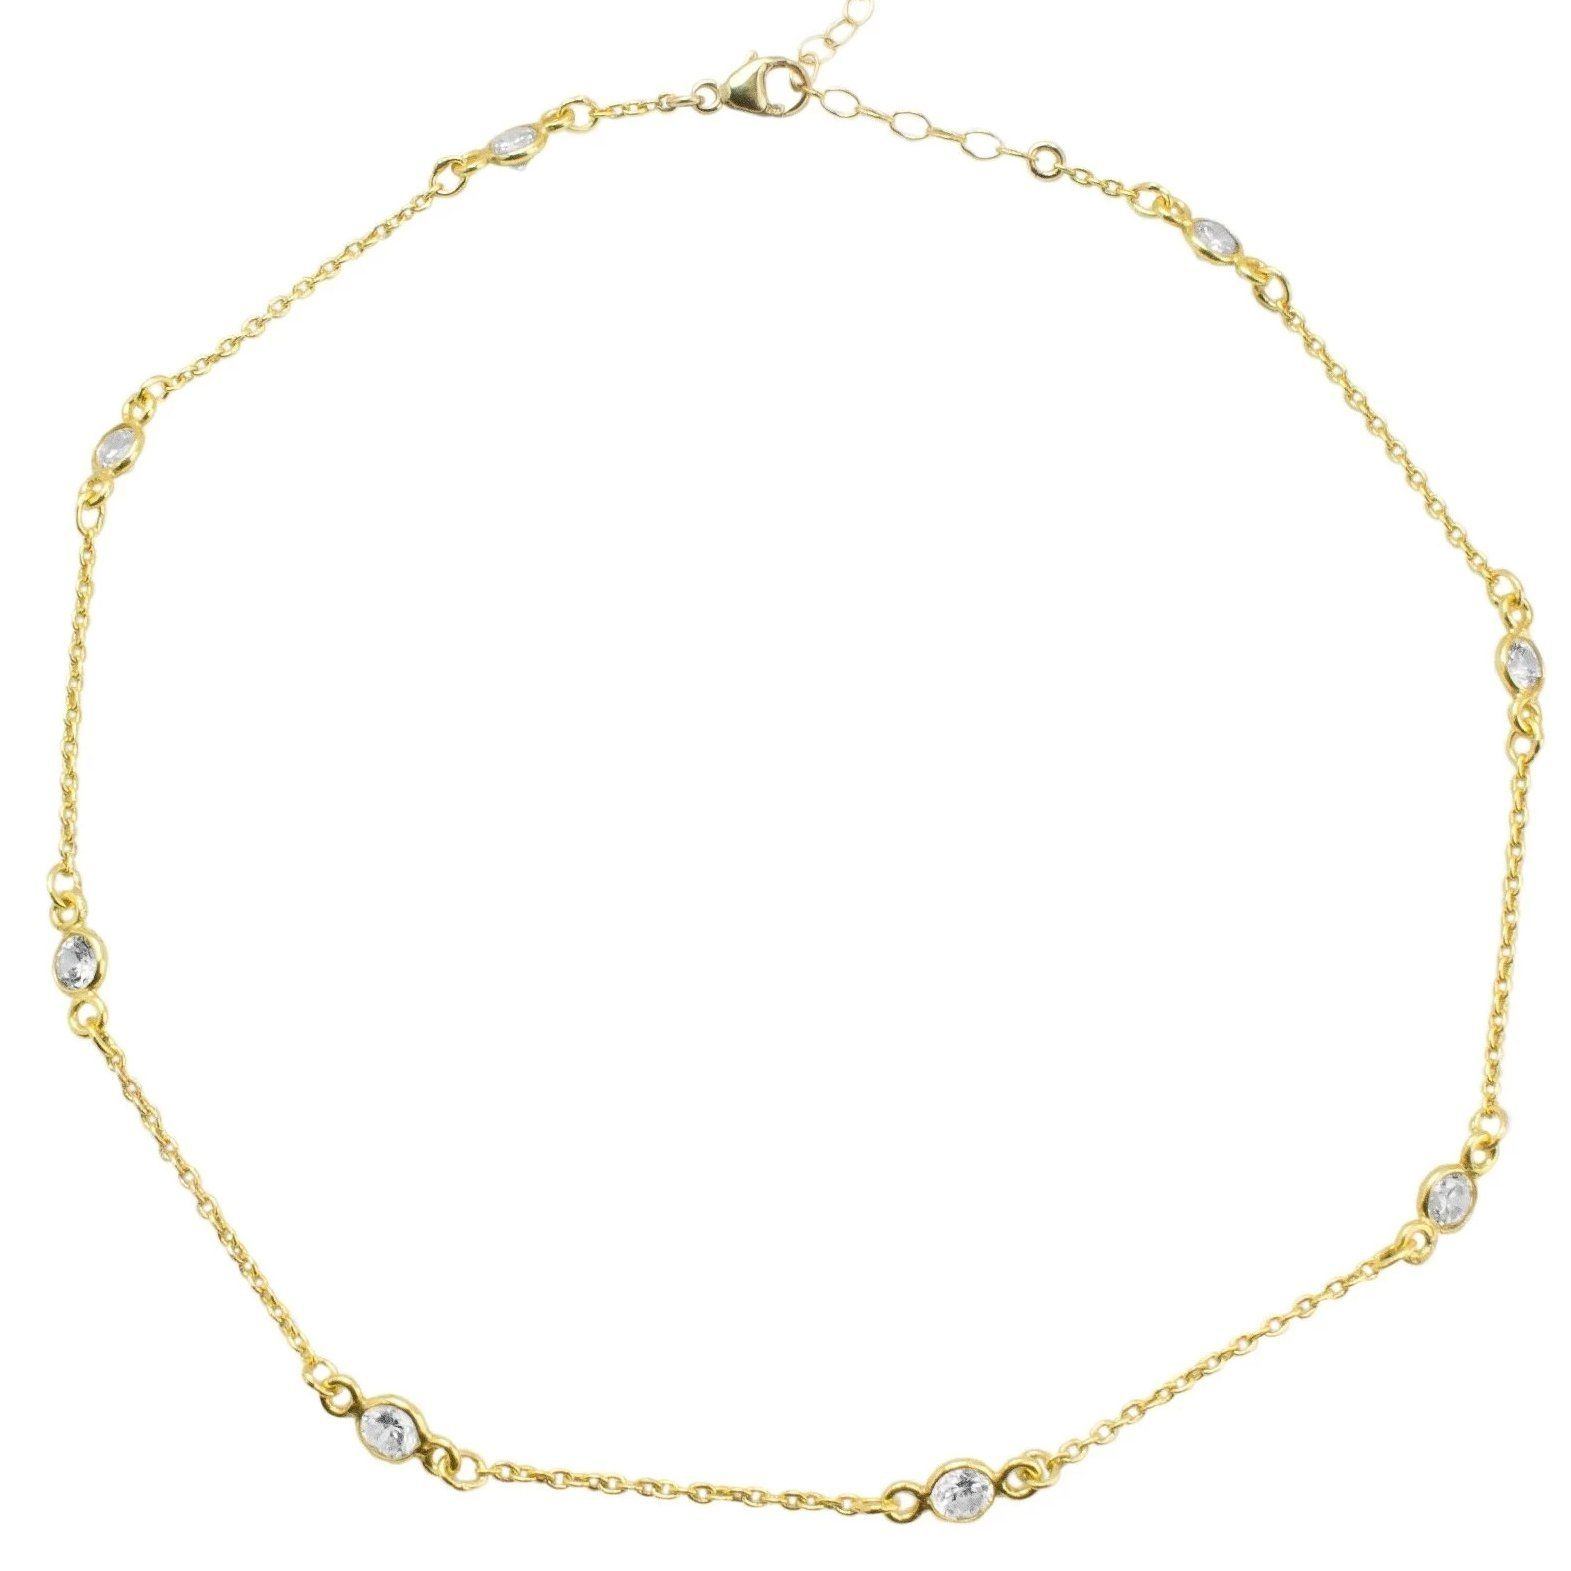 Up close image of gold Crystal Chain Choker against a white background.